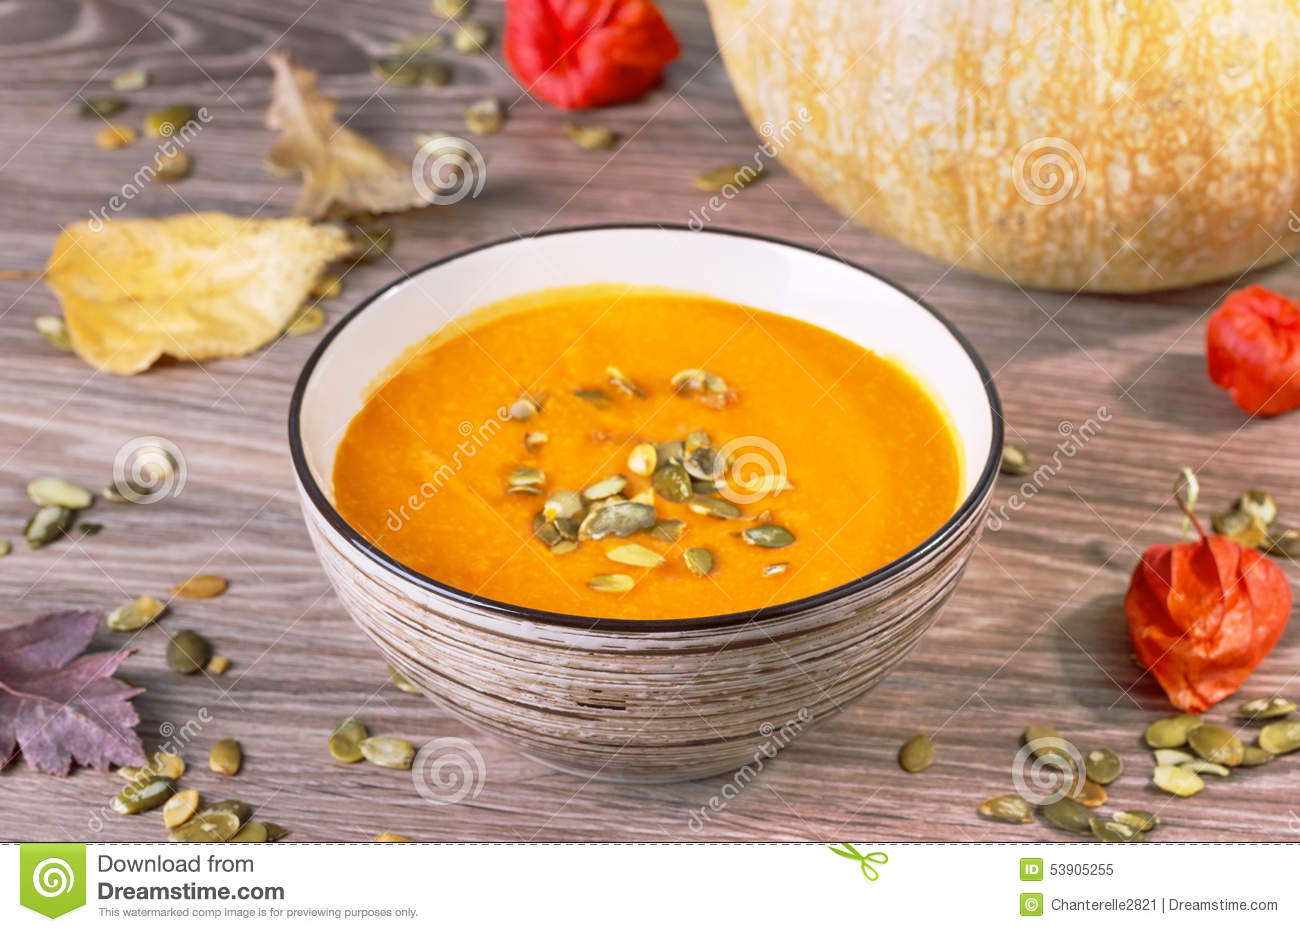 Sunflower Kitchen Soup Where To Buy